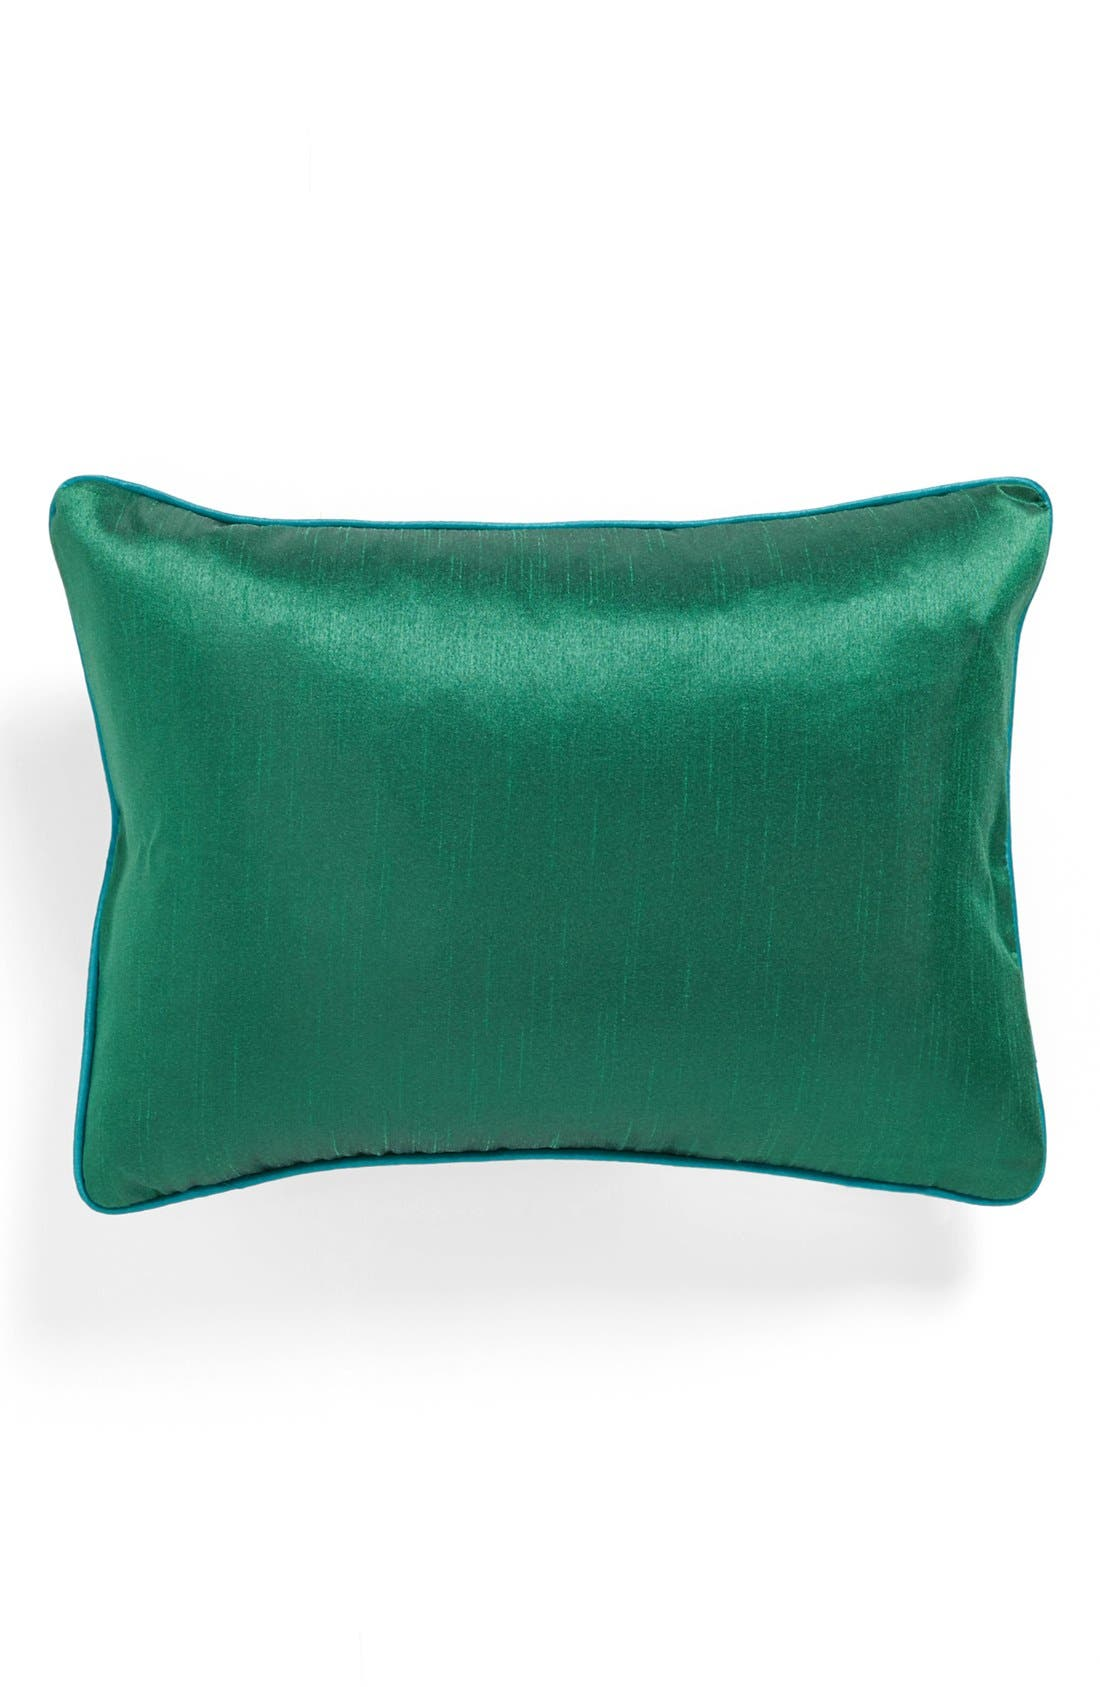 Alternate Image 1 Selected - Poetic Wanderlust 'Brianna' Faux Silk Pillow